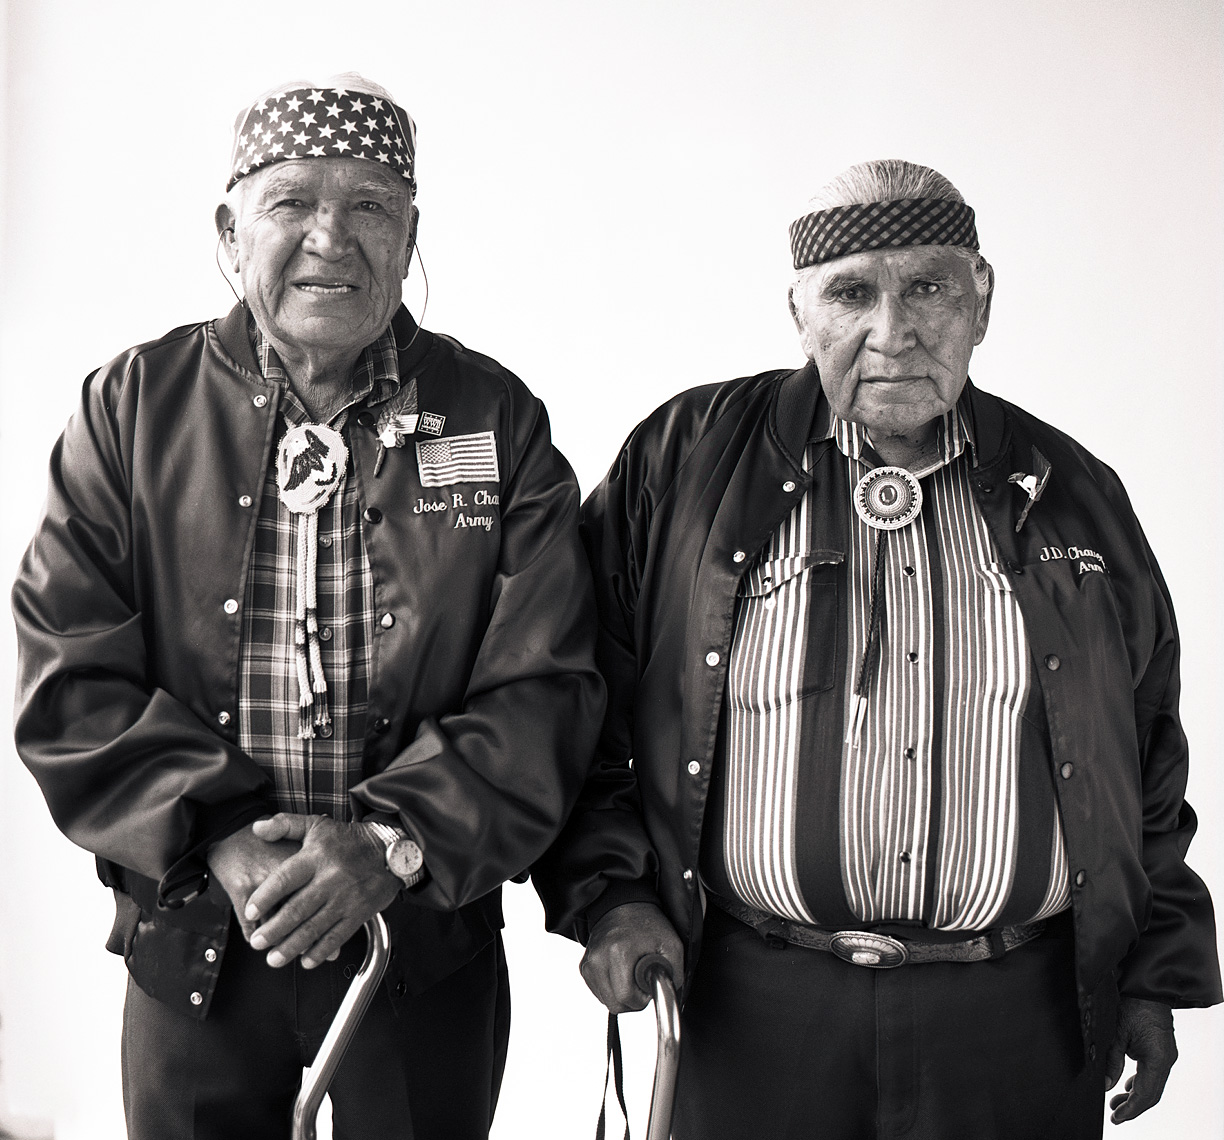 ©Robb Scharetg - WW II Veterans portrait project - US Army - Brothers who served together